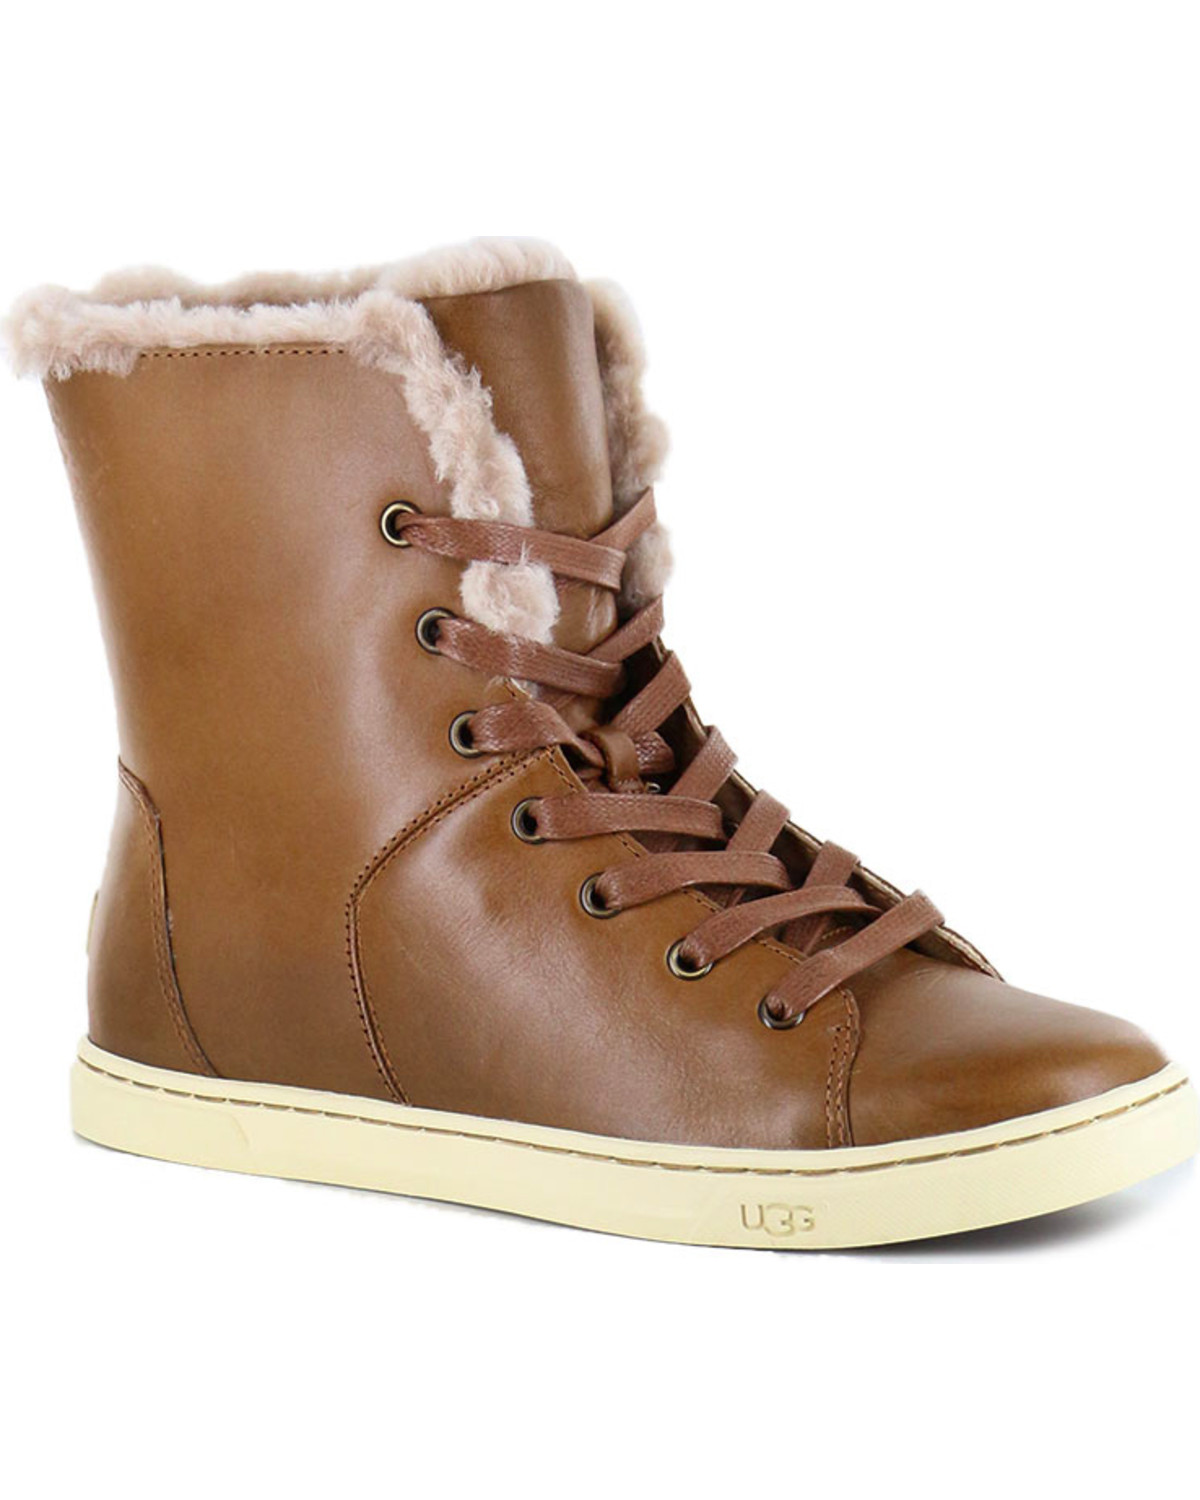 9deff4eb74e UGG® Women's Croft Luxe Quilt Shoes